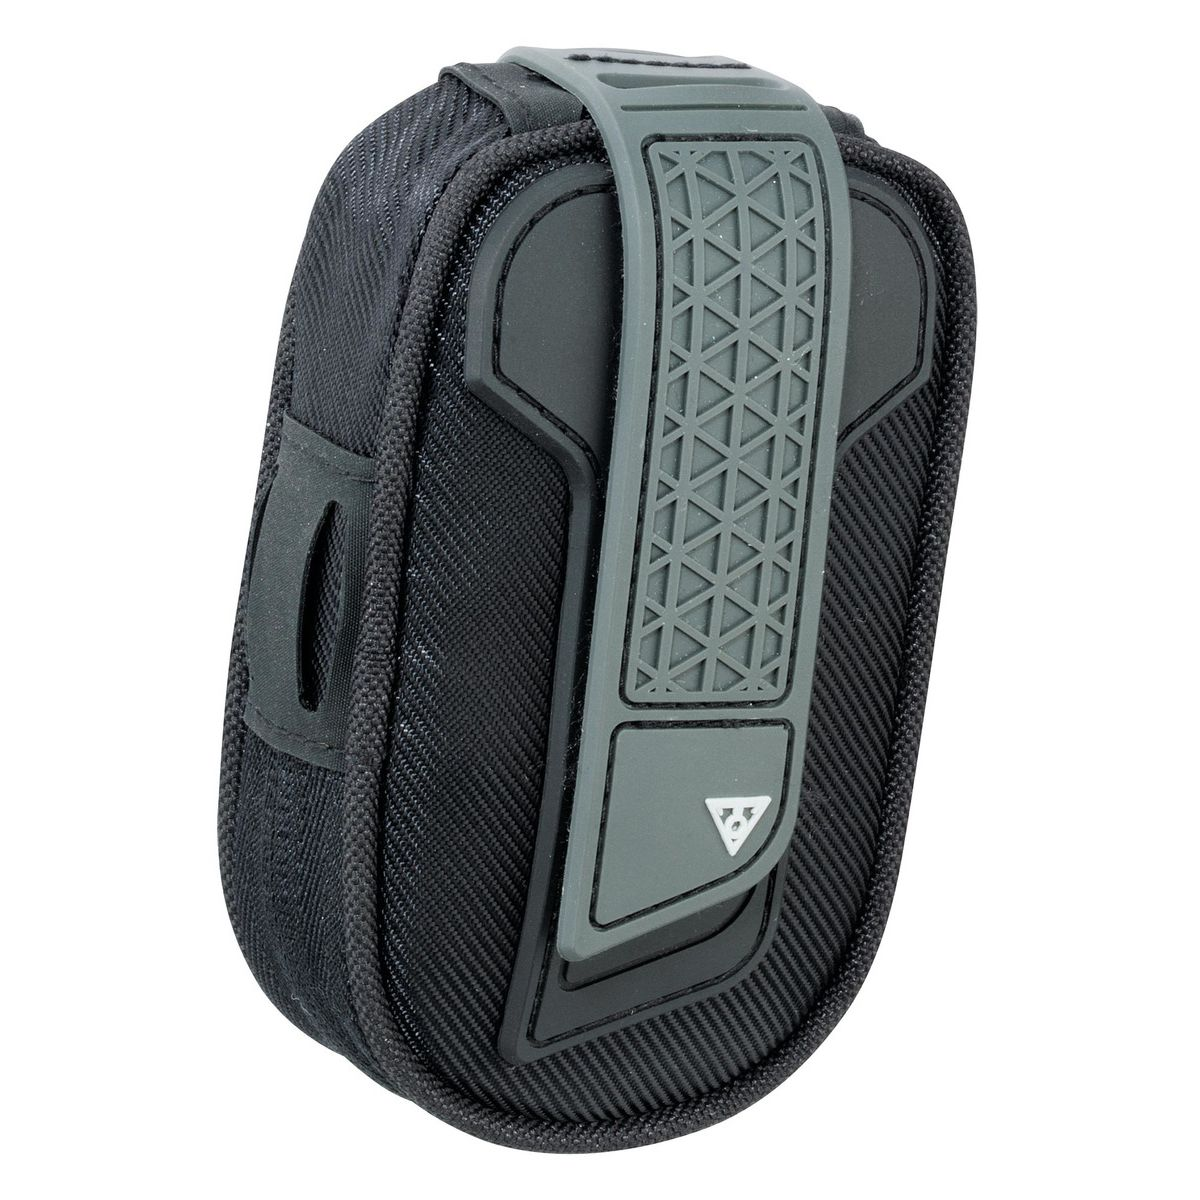 Tri-Backup Tubebag Saddle Bag